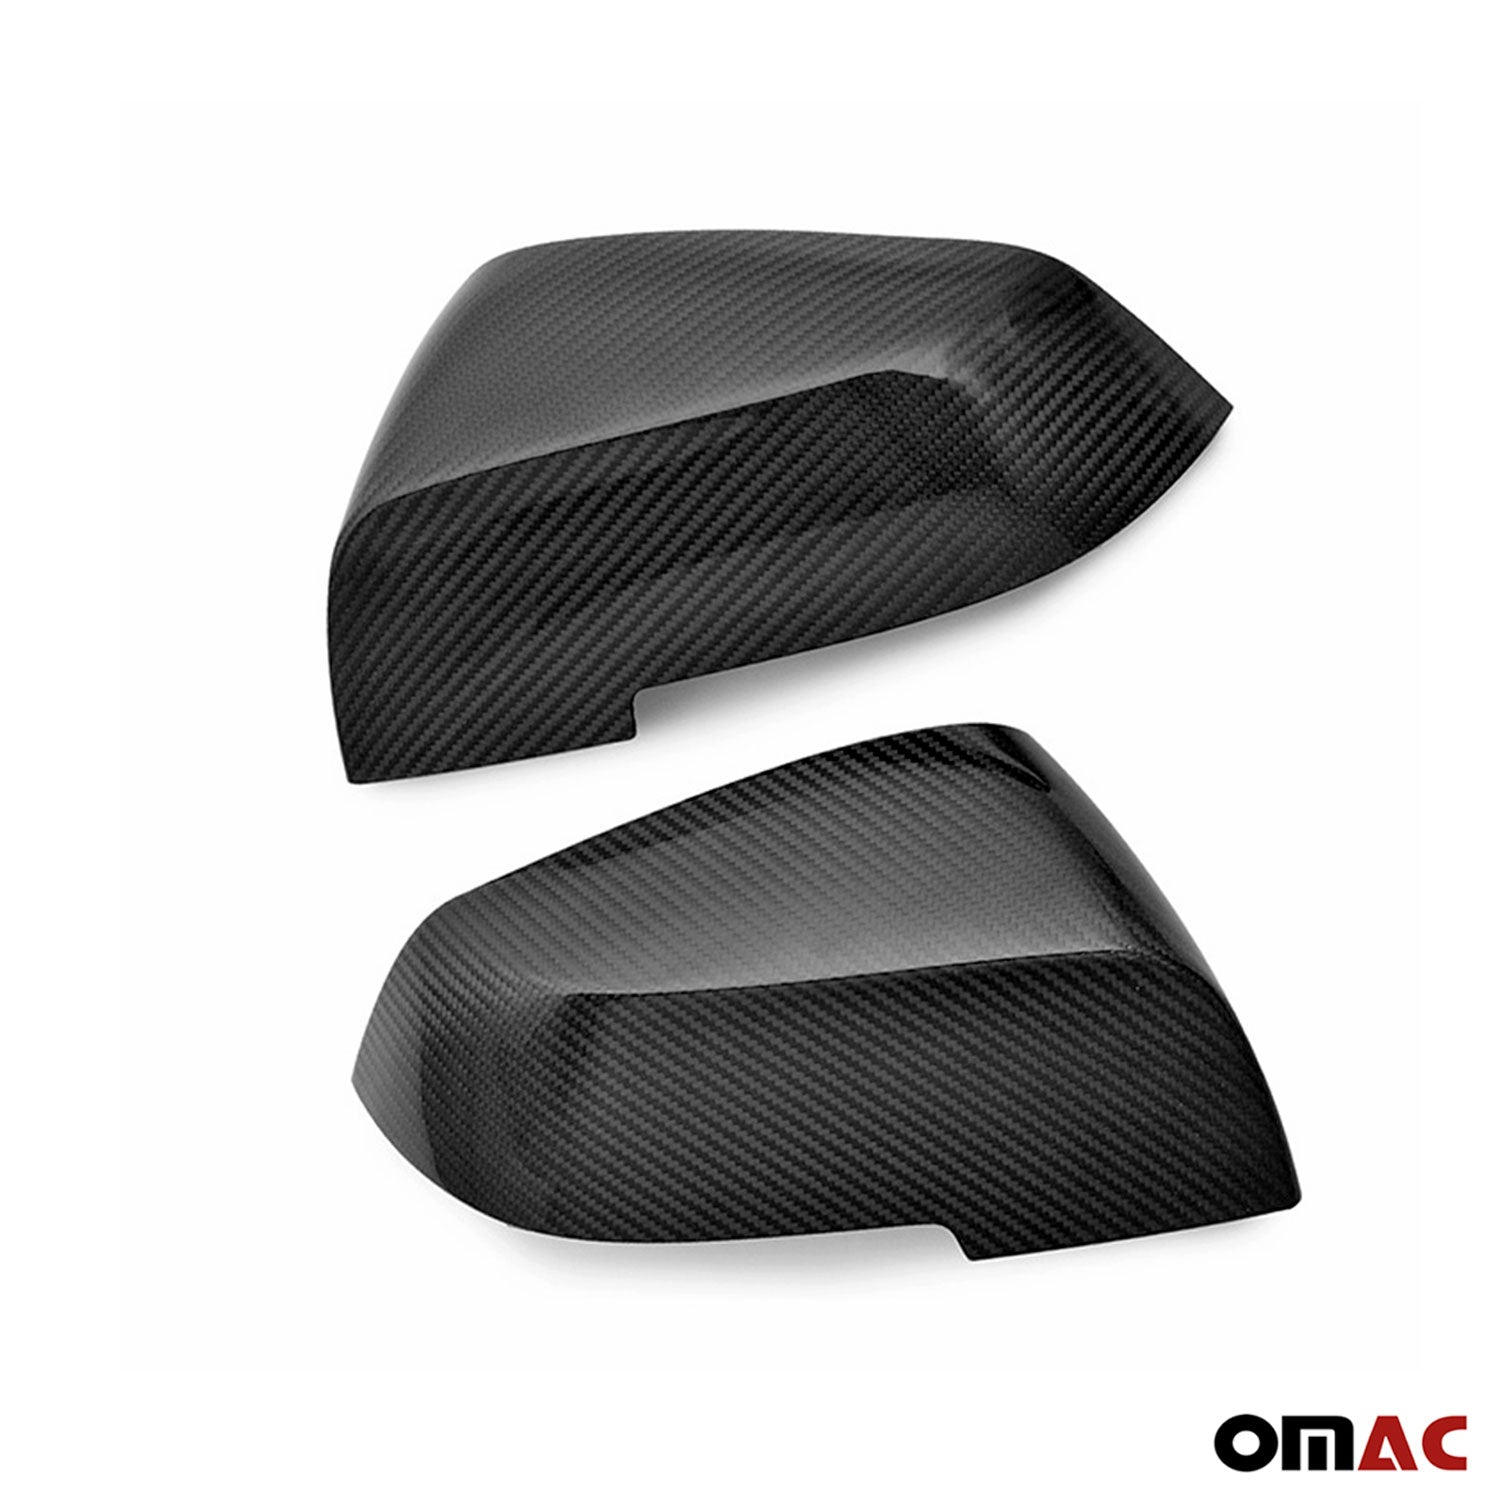 Fits BMW i3 Series I01 2013-2020 Genuine Carbon Fiber Side Mirror Cover Cap